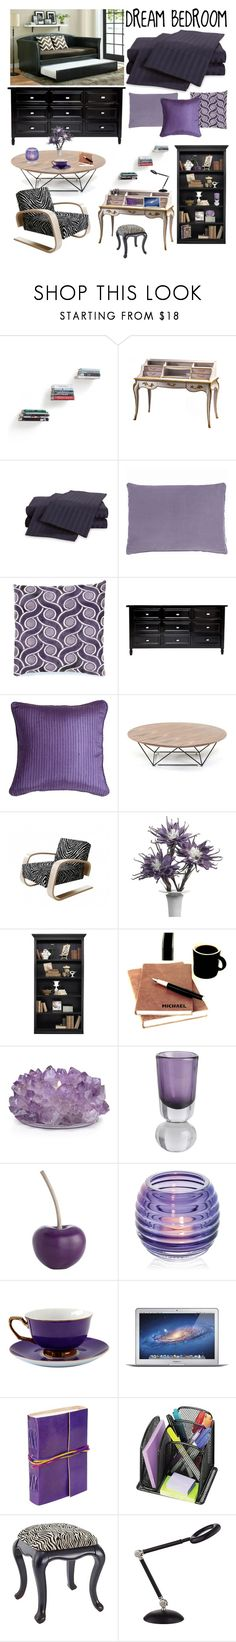 """""""My Dream Bedroom"""" by saifai ❤ liked on Polyvore featuring interior, interiors, interior design, home, home decor, interior decorating, Umbra, ExceptionalSheets, Designers Guild and Baxter Designs"""